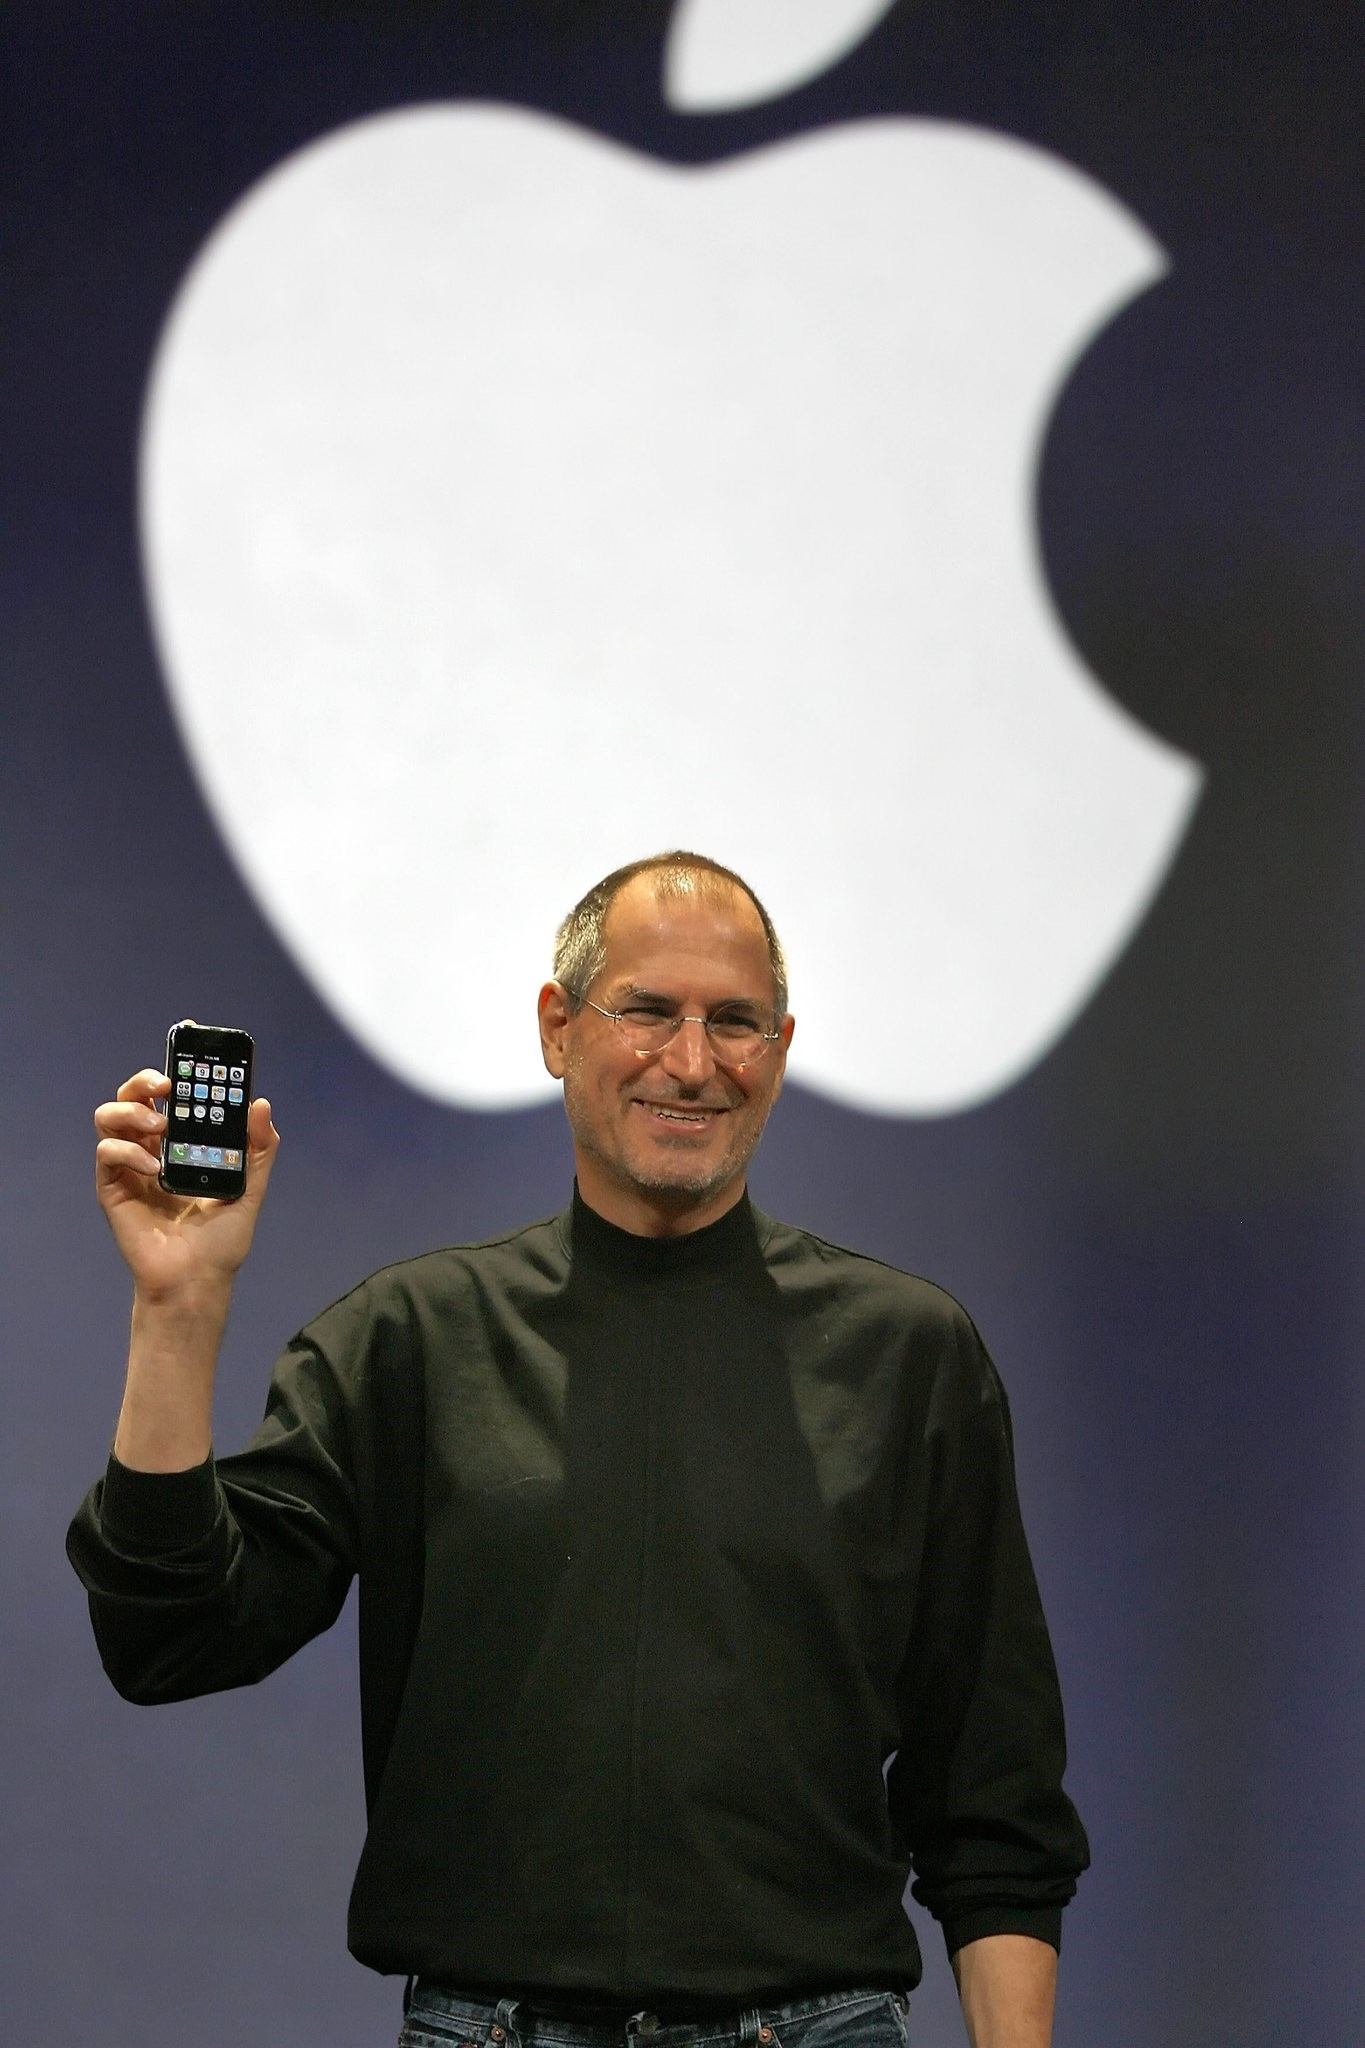 Steve Jobs introduced the first iPhone on Jan. 9, 2007 and set the stage for mobile computing - and an entire industry revolving around it.